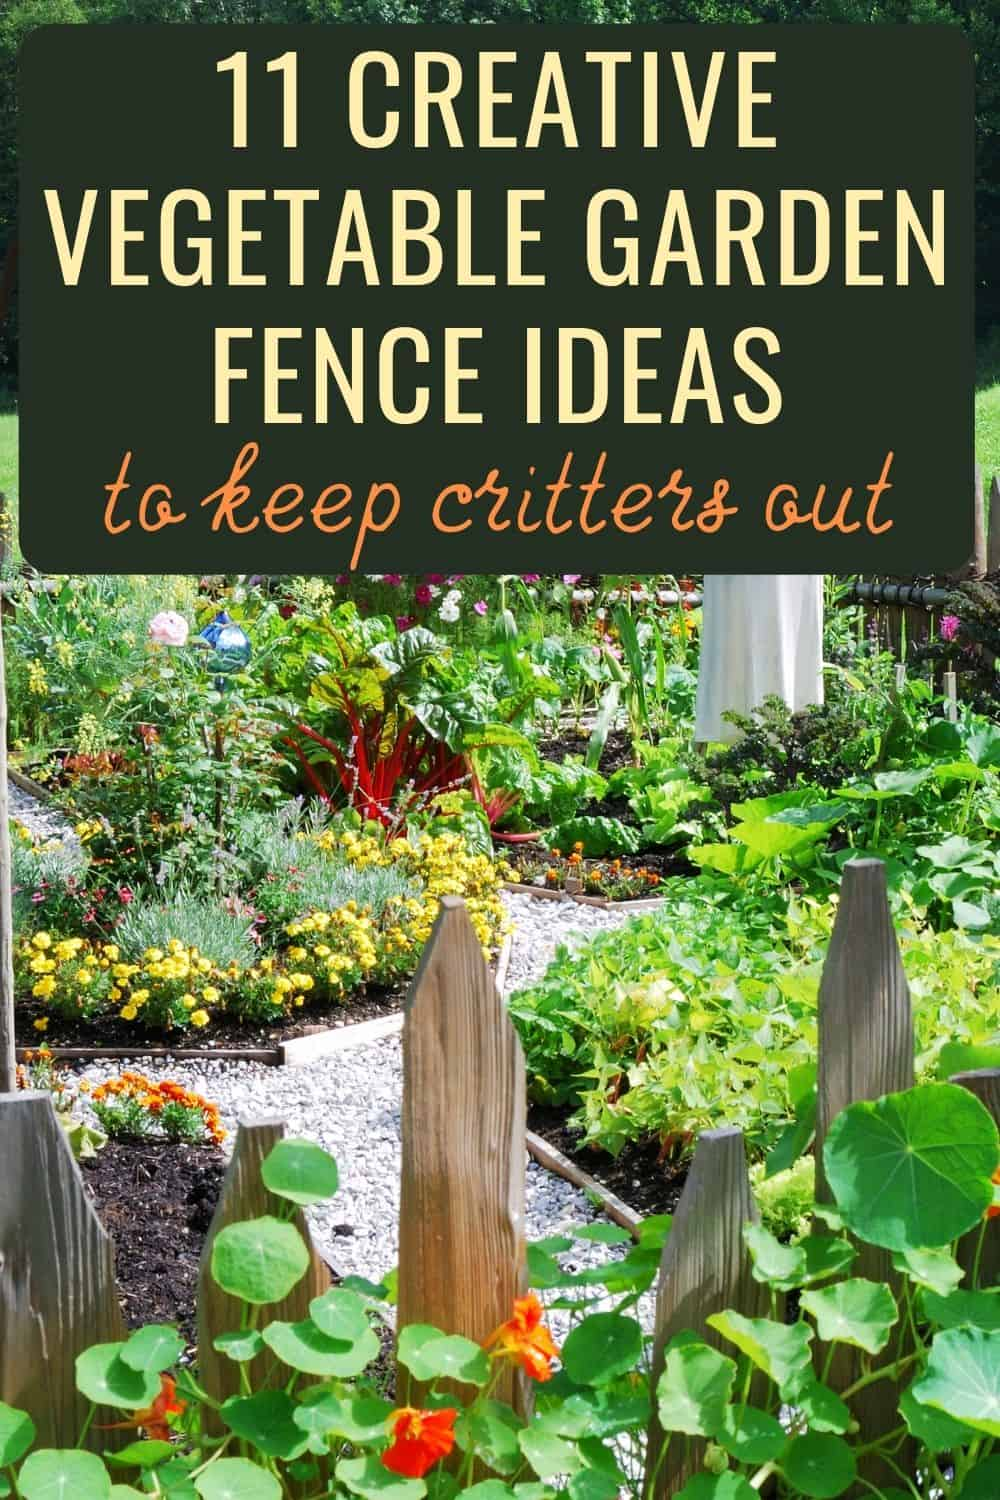 11 creative vegetable carden fence ideas to keep critters out